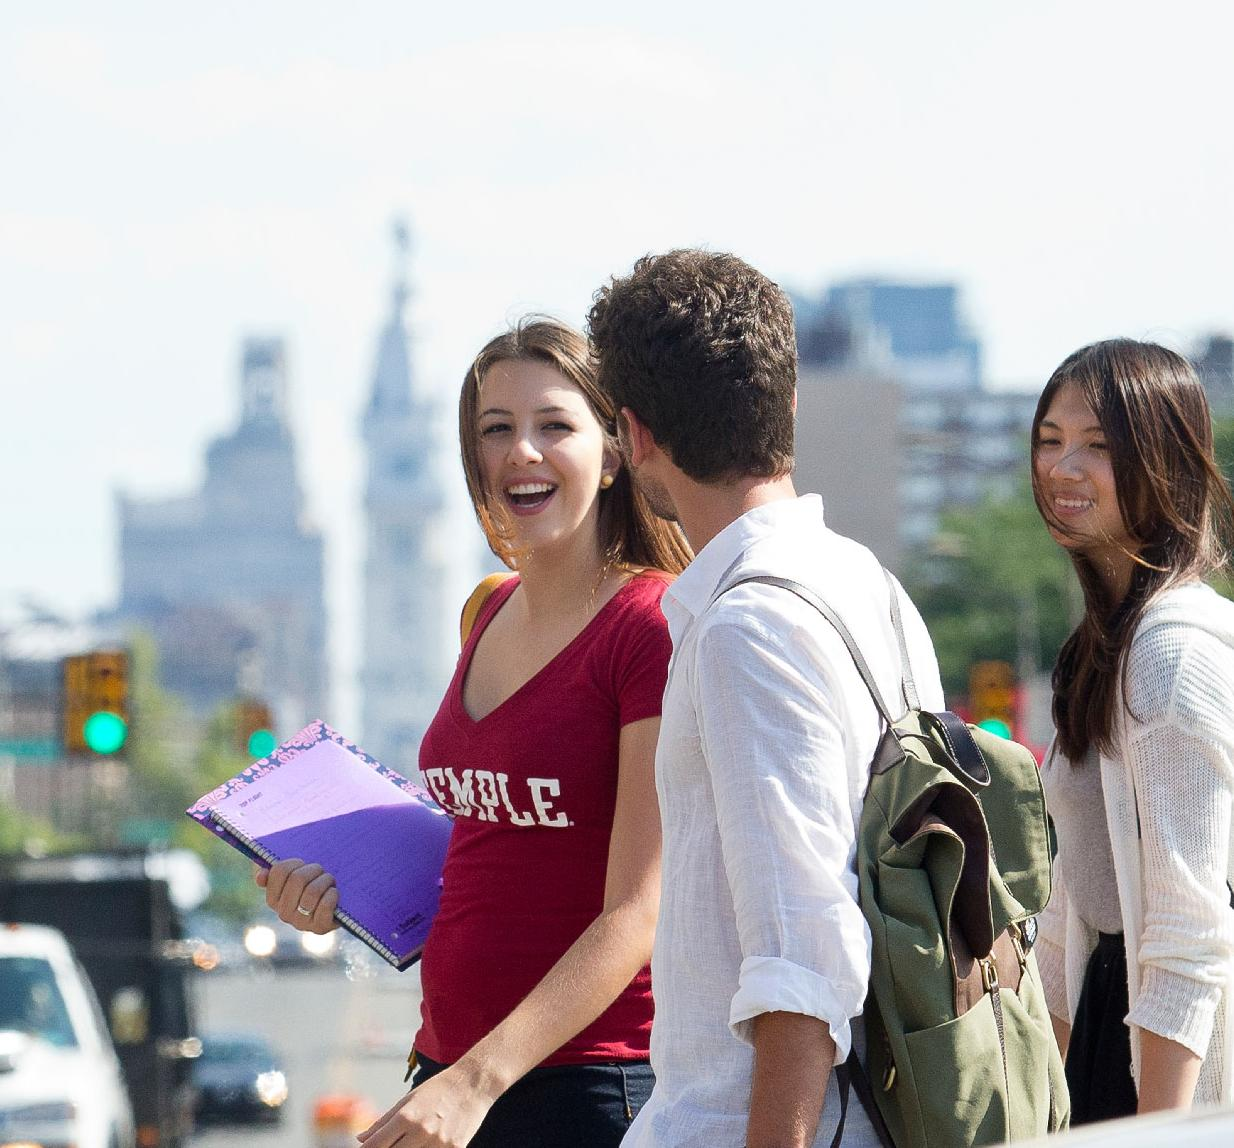 Students crossing the street and talking